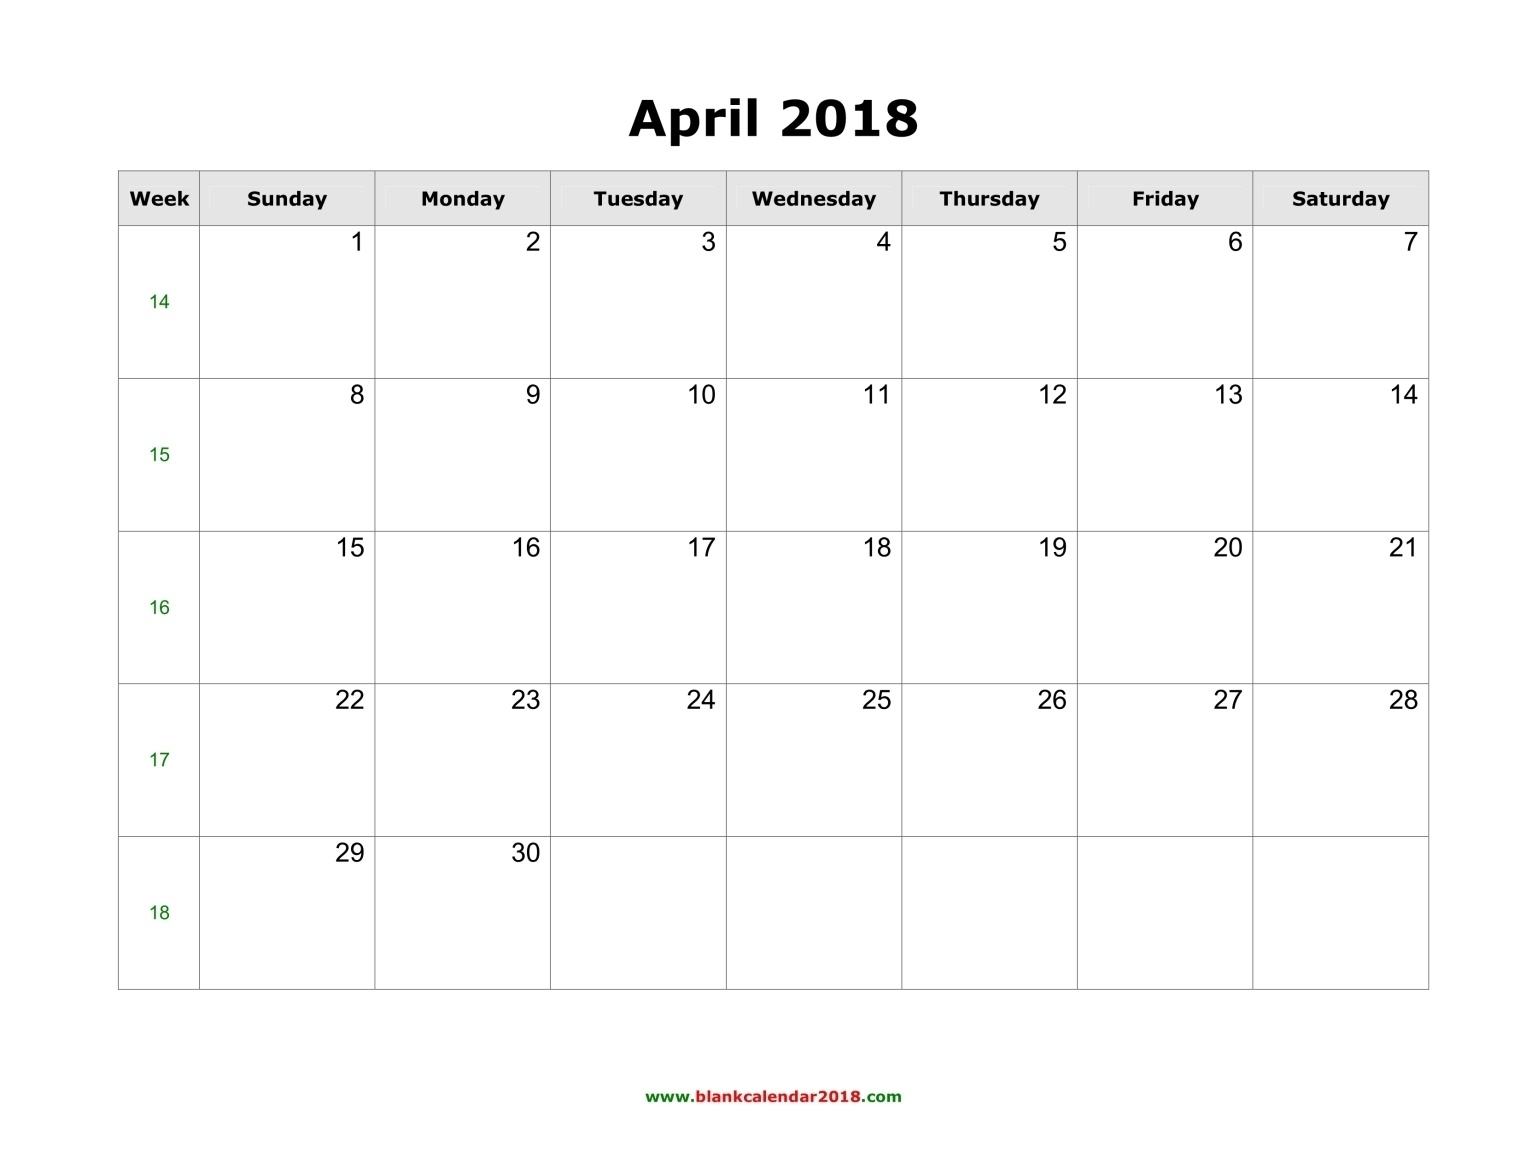 Blank Calendar For April 2018  Blank Calendar With Only Weekdays